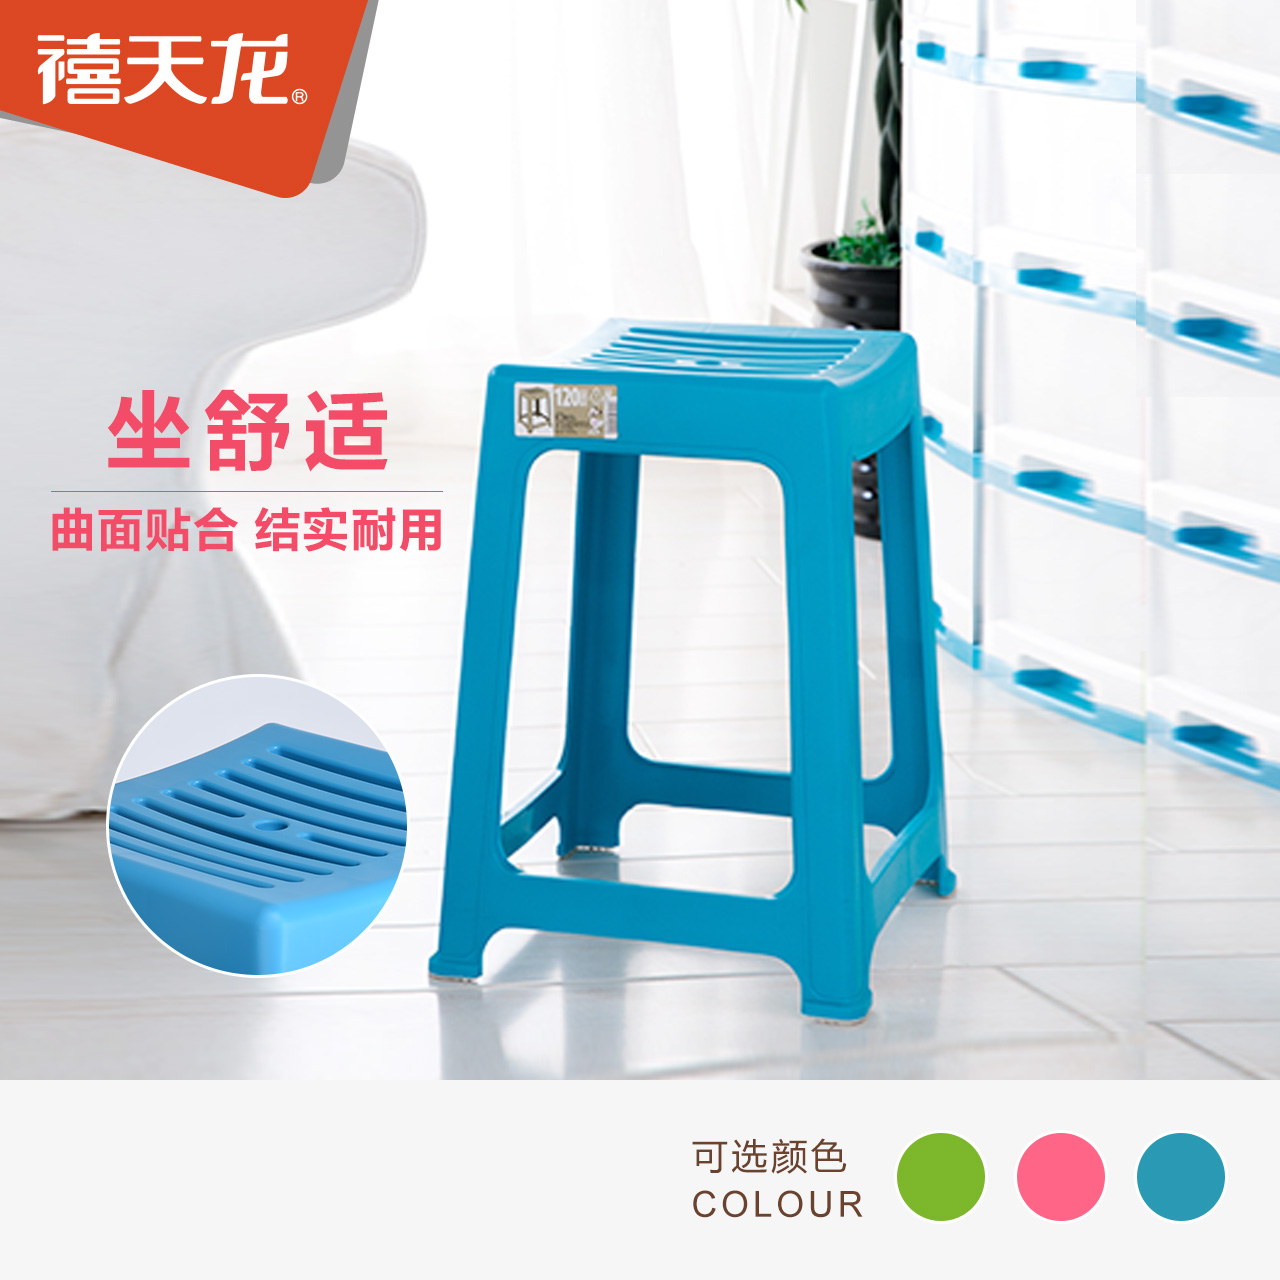 China Plastic Stool Seat, China Plastic Stool Seat Shopping Guide at ...